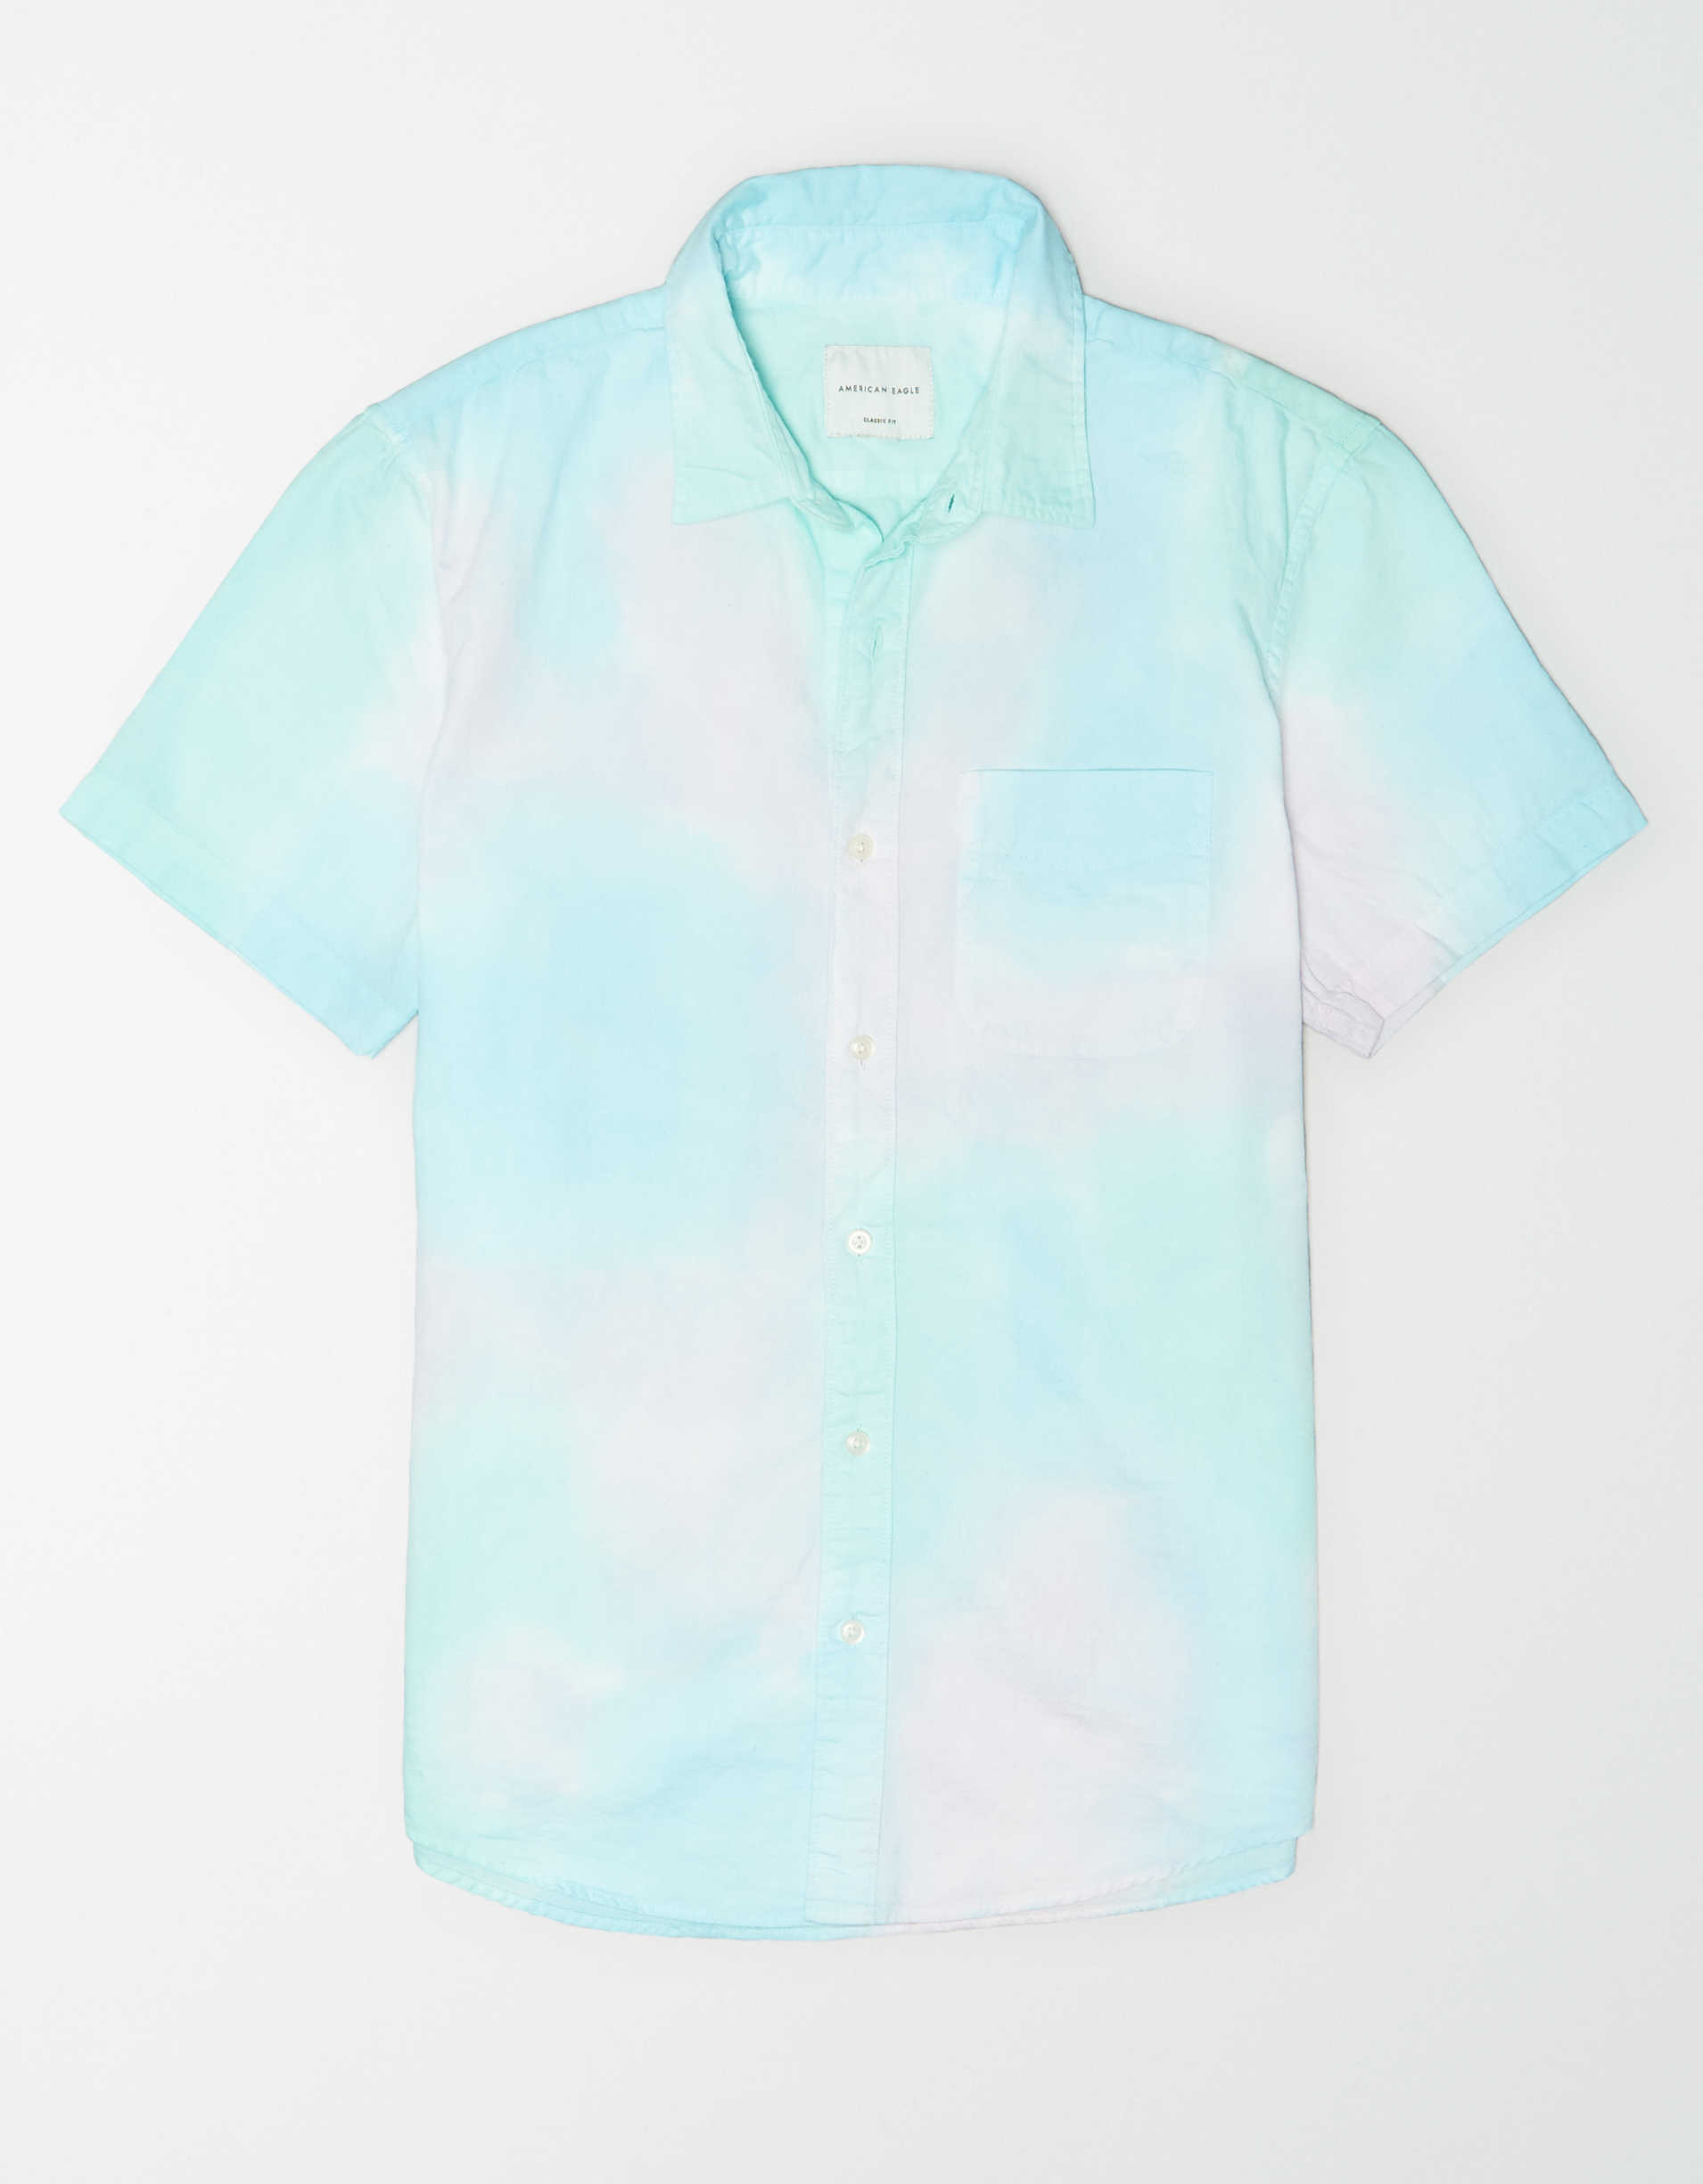 AE Tie-Dye Short Sleeve Button Up Shirt